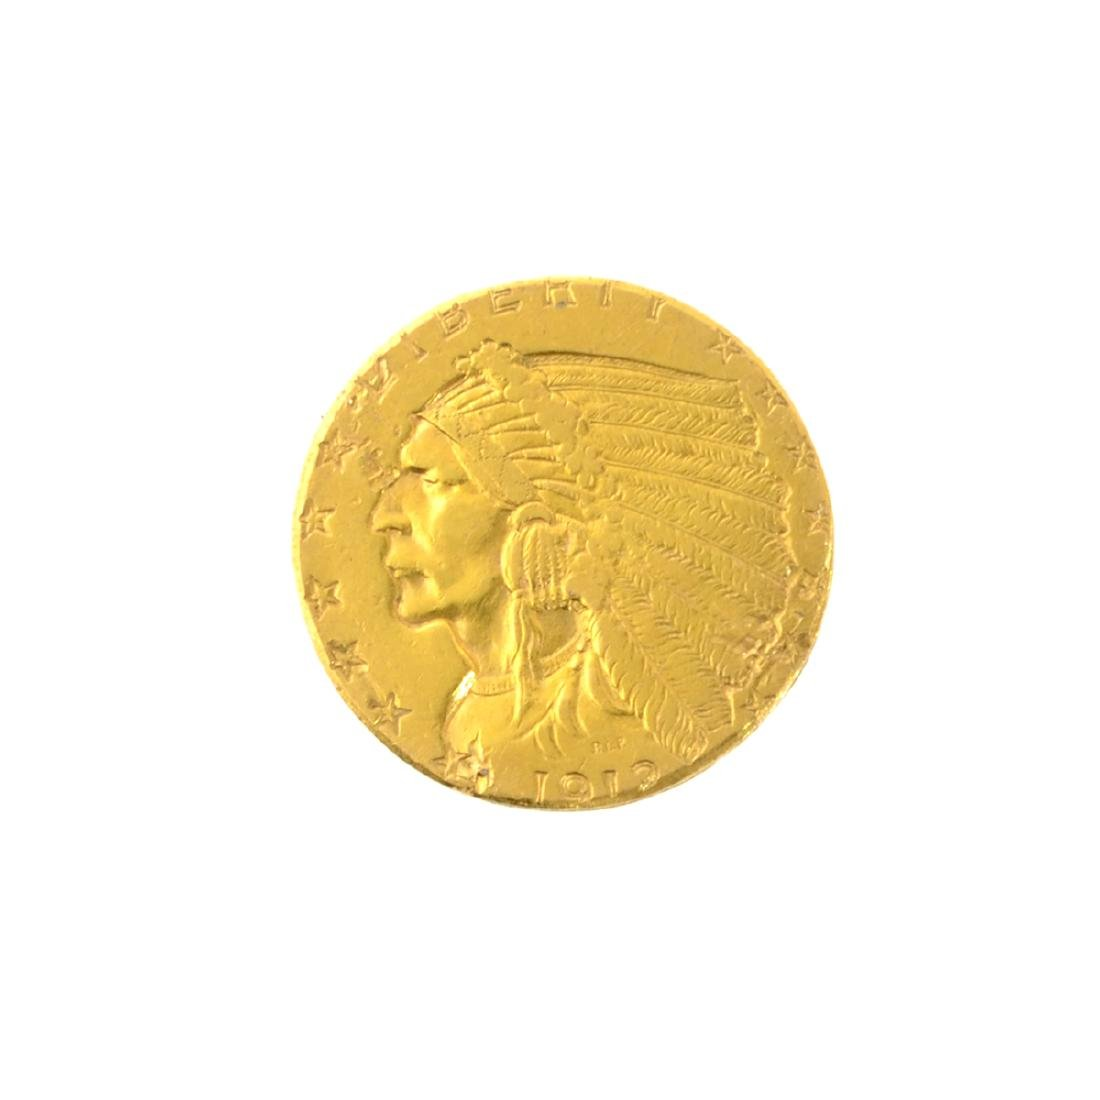 *1912 $2.50 U.S. Indian Head Gold Coin (PS-JWJ)